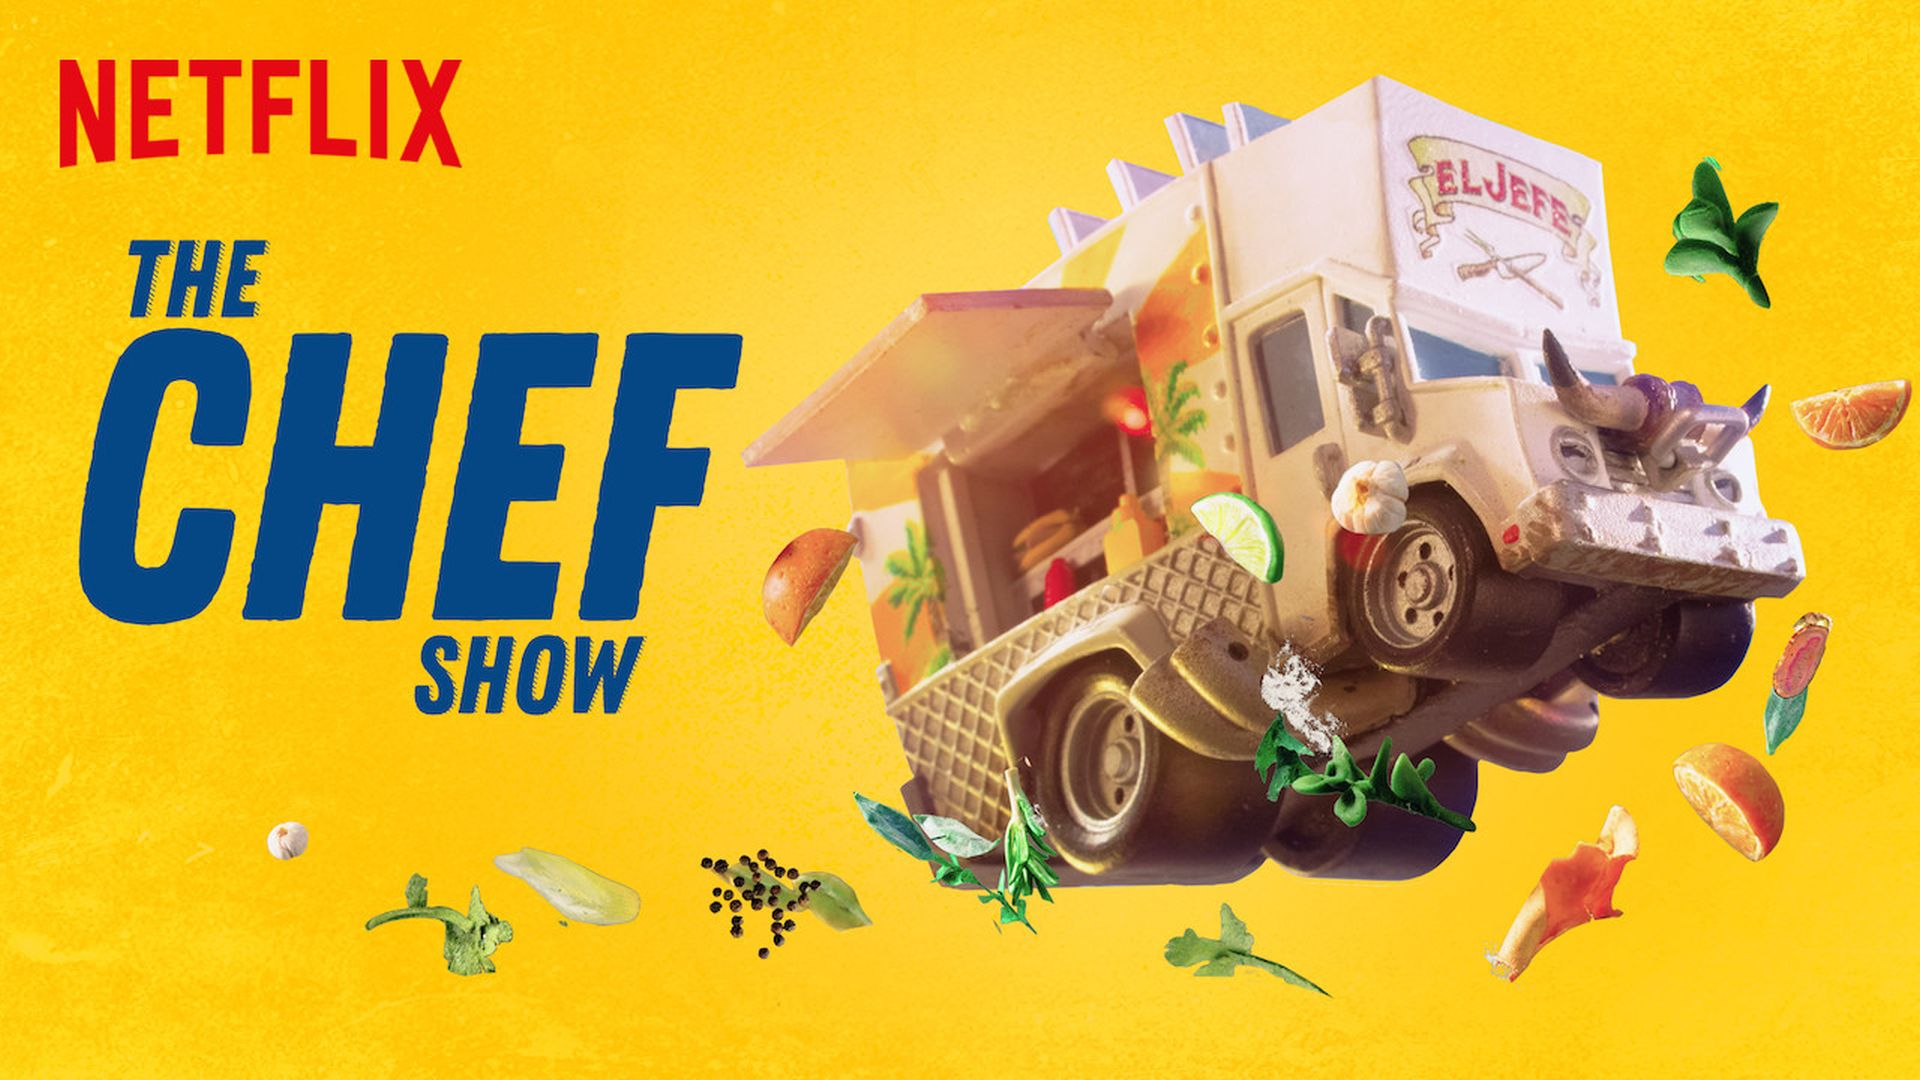 480-chef-show-poster.jpg